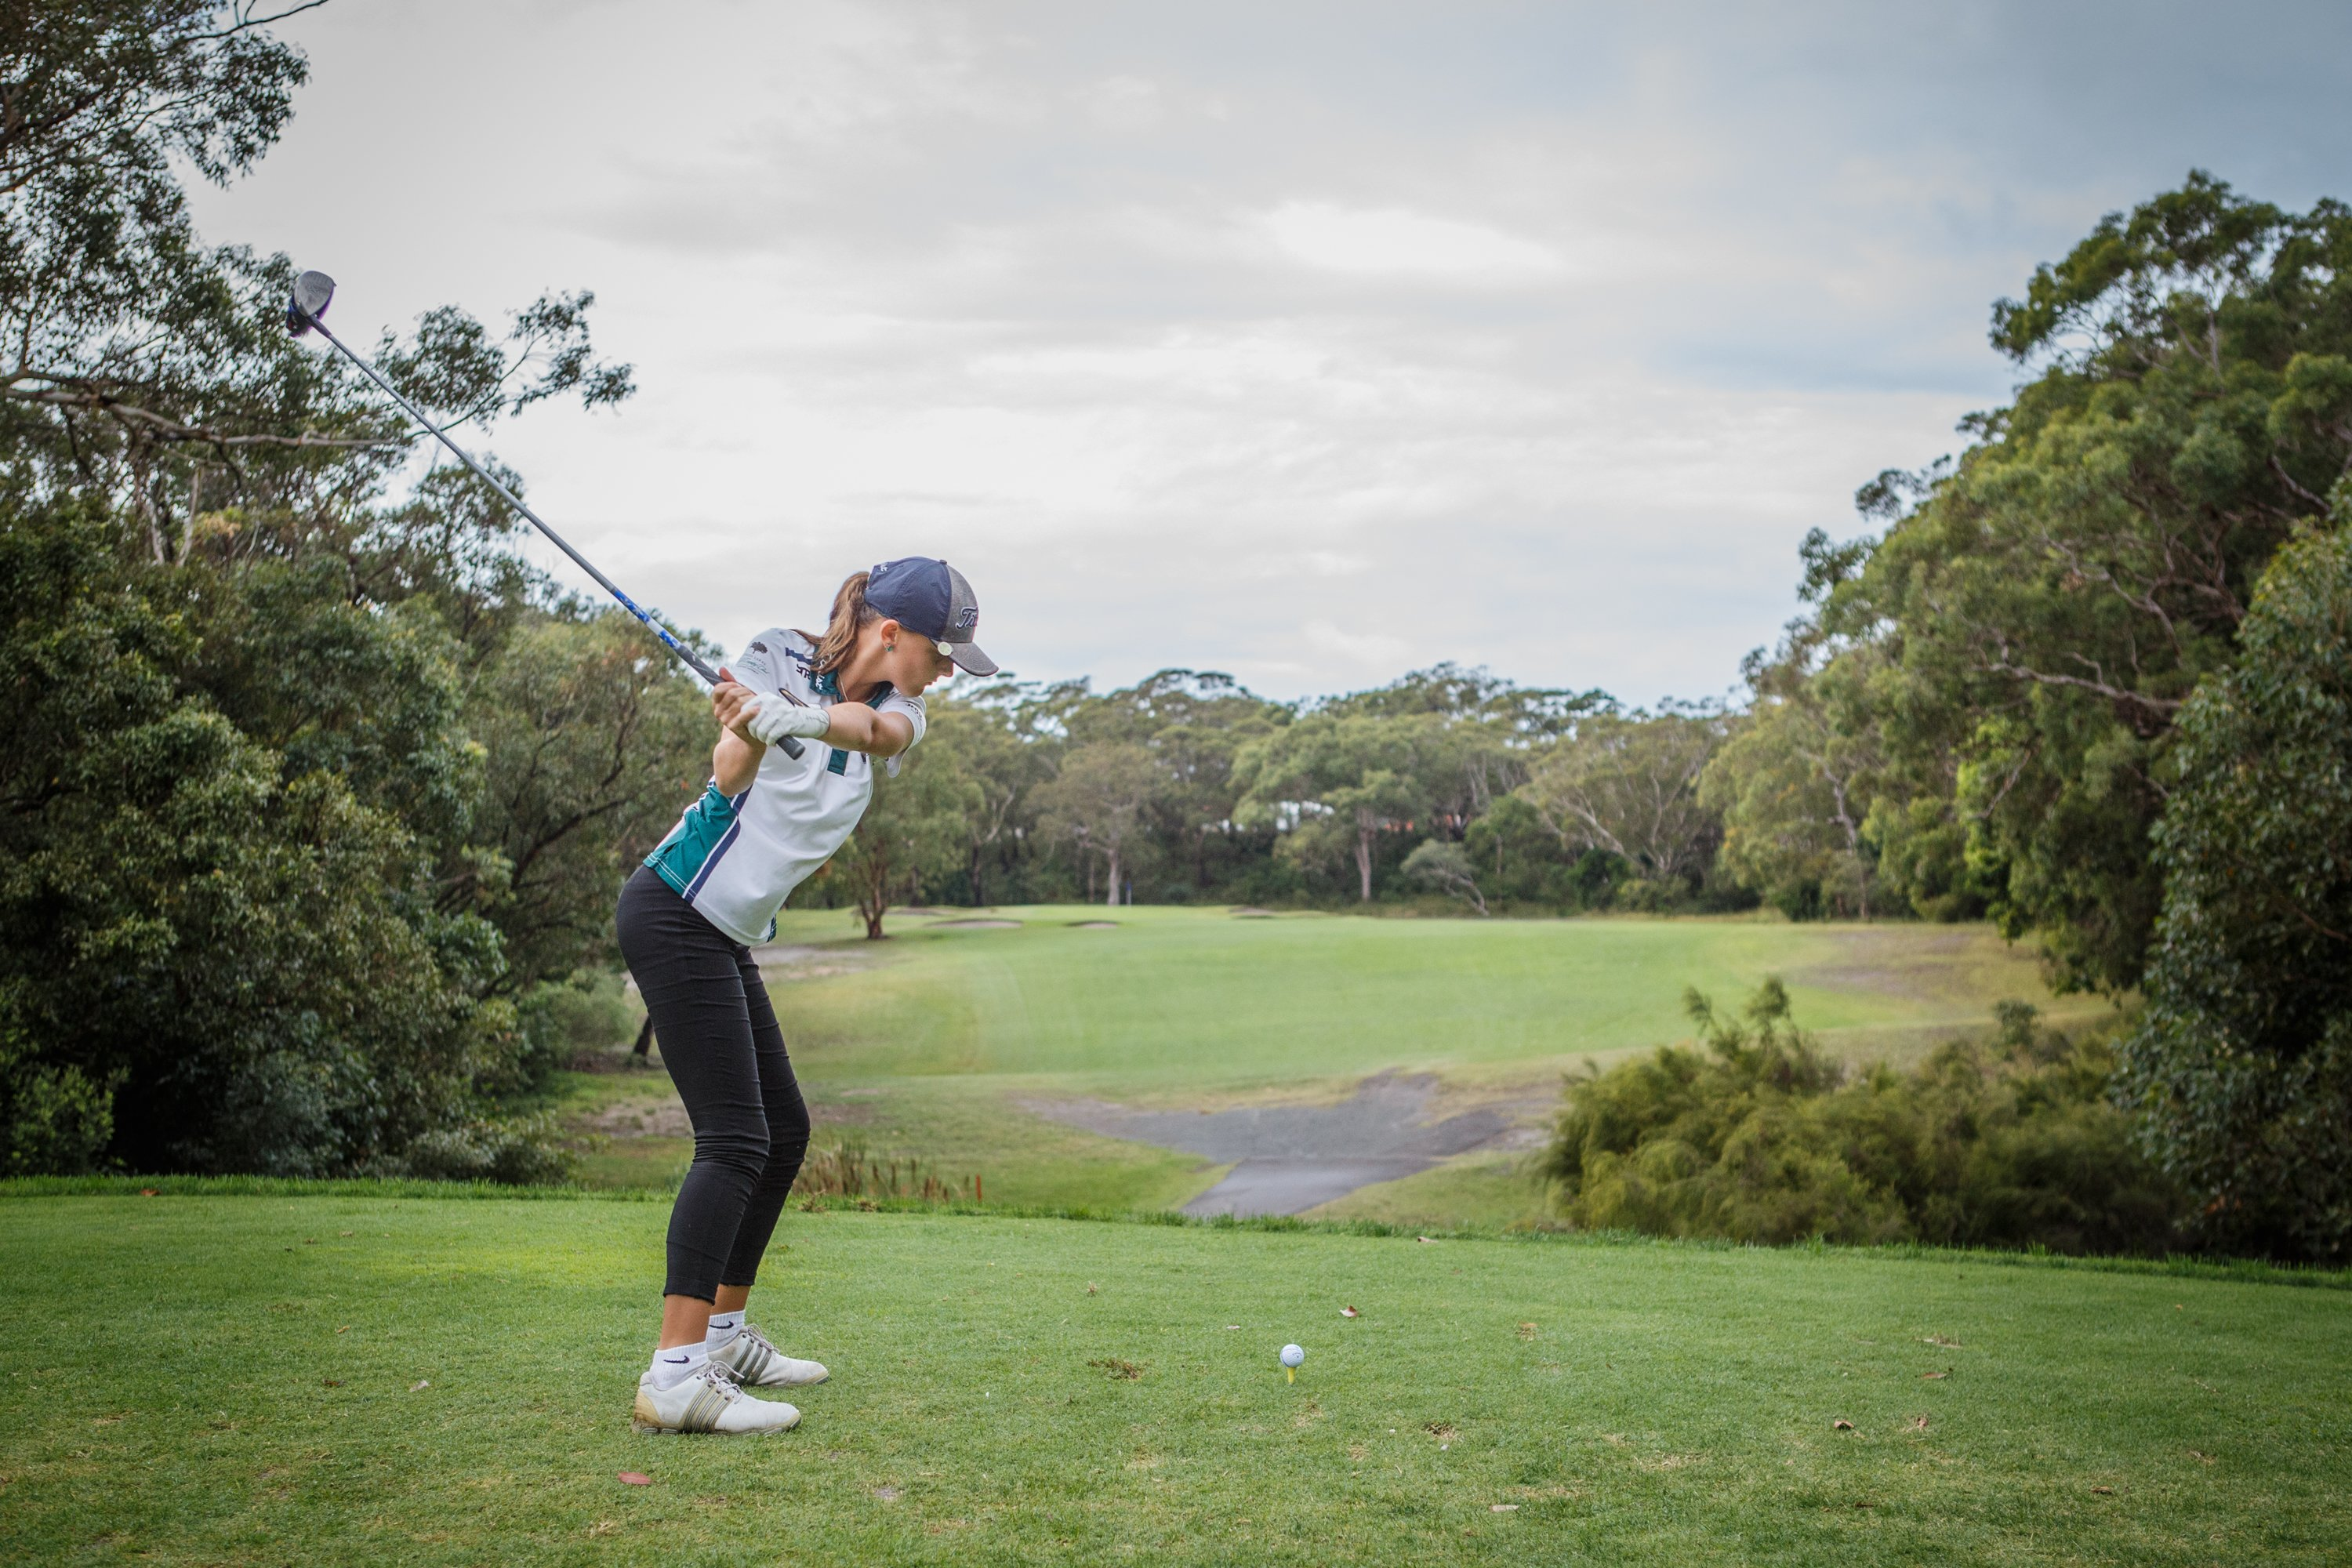 Eight boys and three girls from the Hunter Academy of Sport were among a full field of 128 junior golfers participating in the first Jack Newton Junior Golf Masters for 2019 at the weekend in Wagga Wagga.